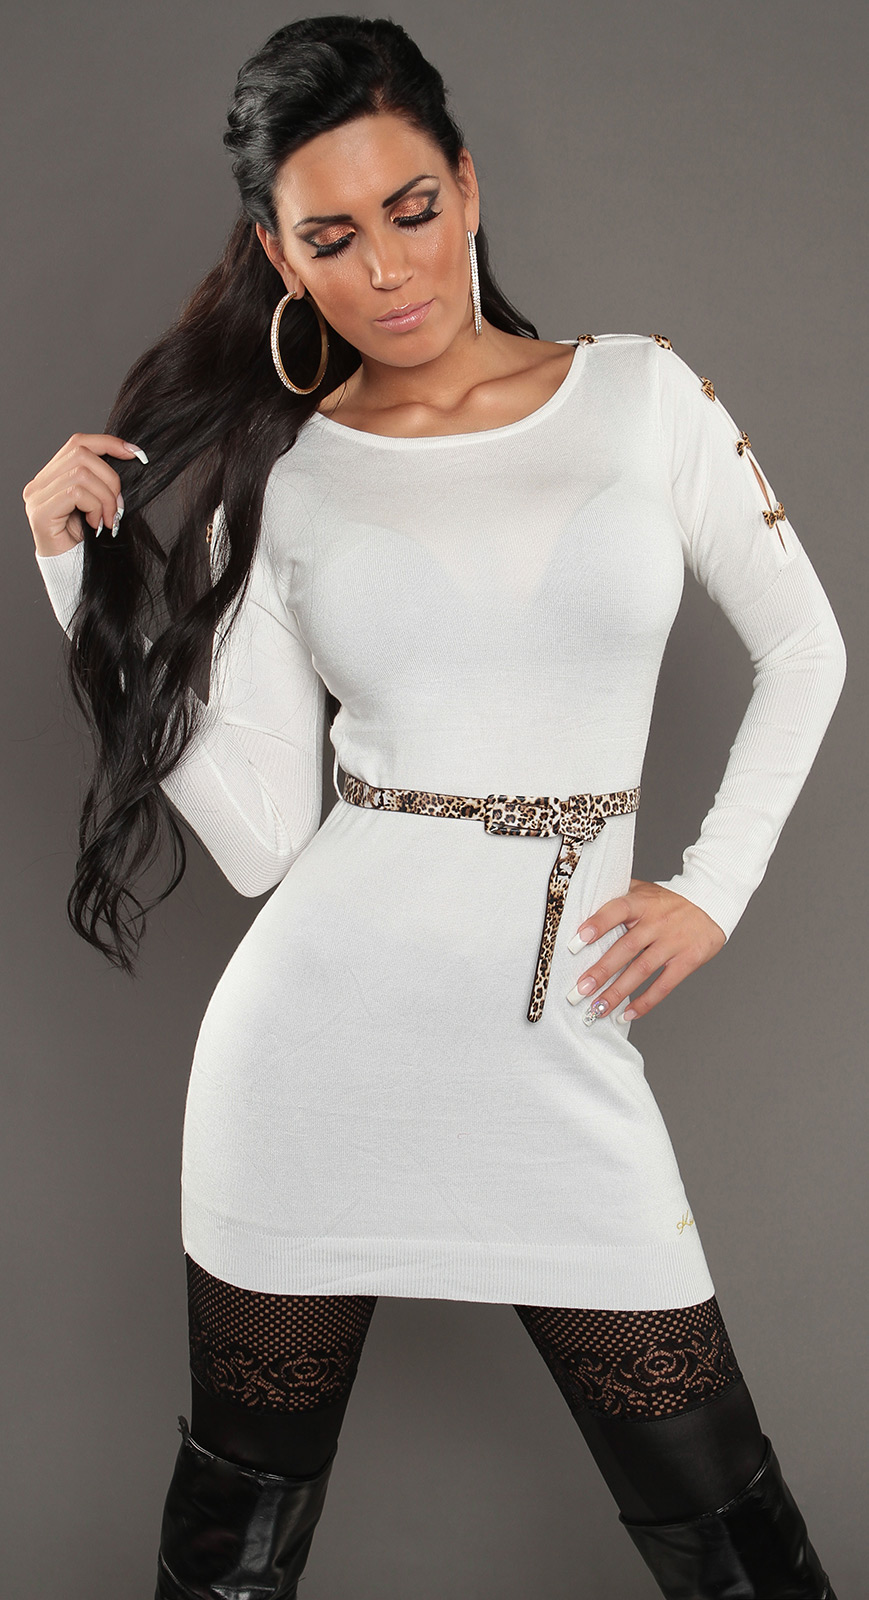 Soft Knit Jumper with Open Shoulders & Leopard Belt - White - Click Image to Close